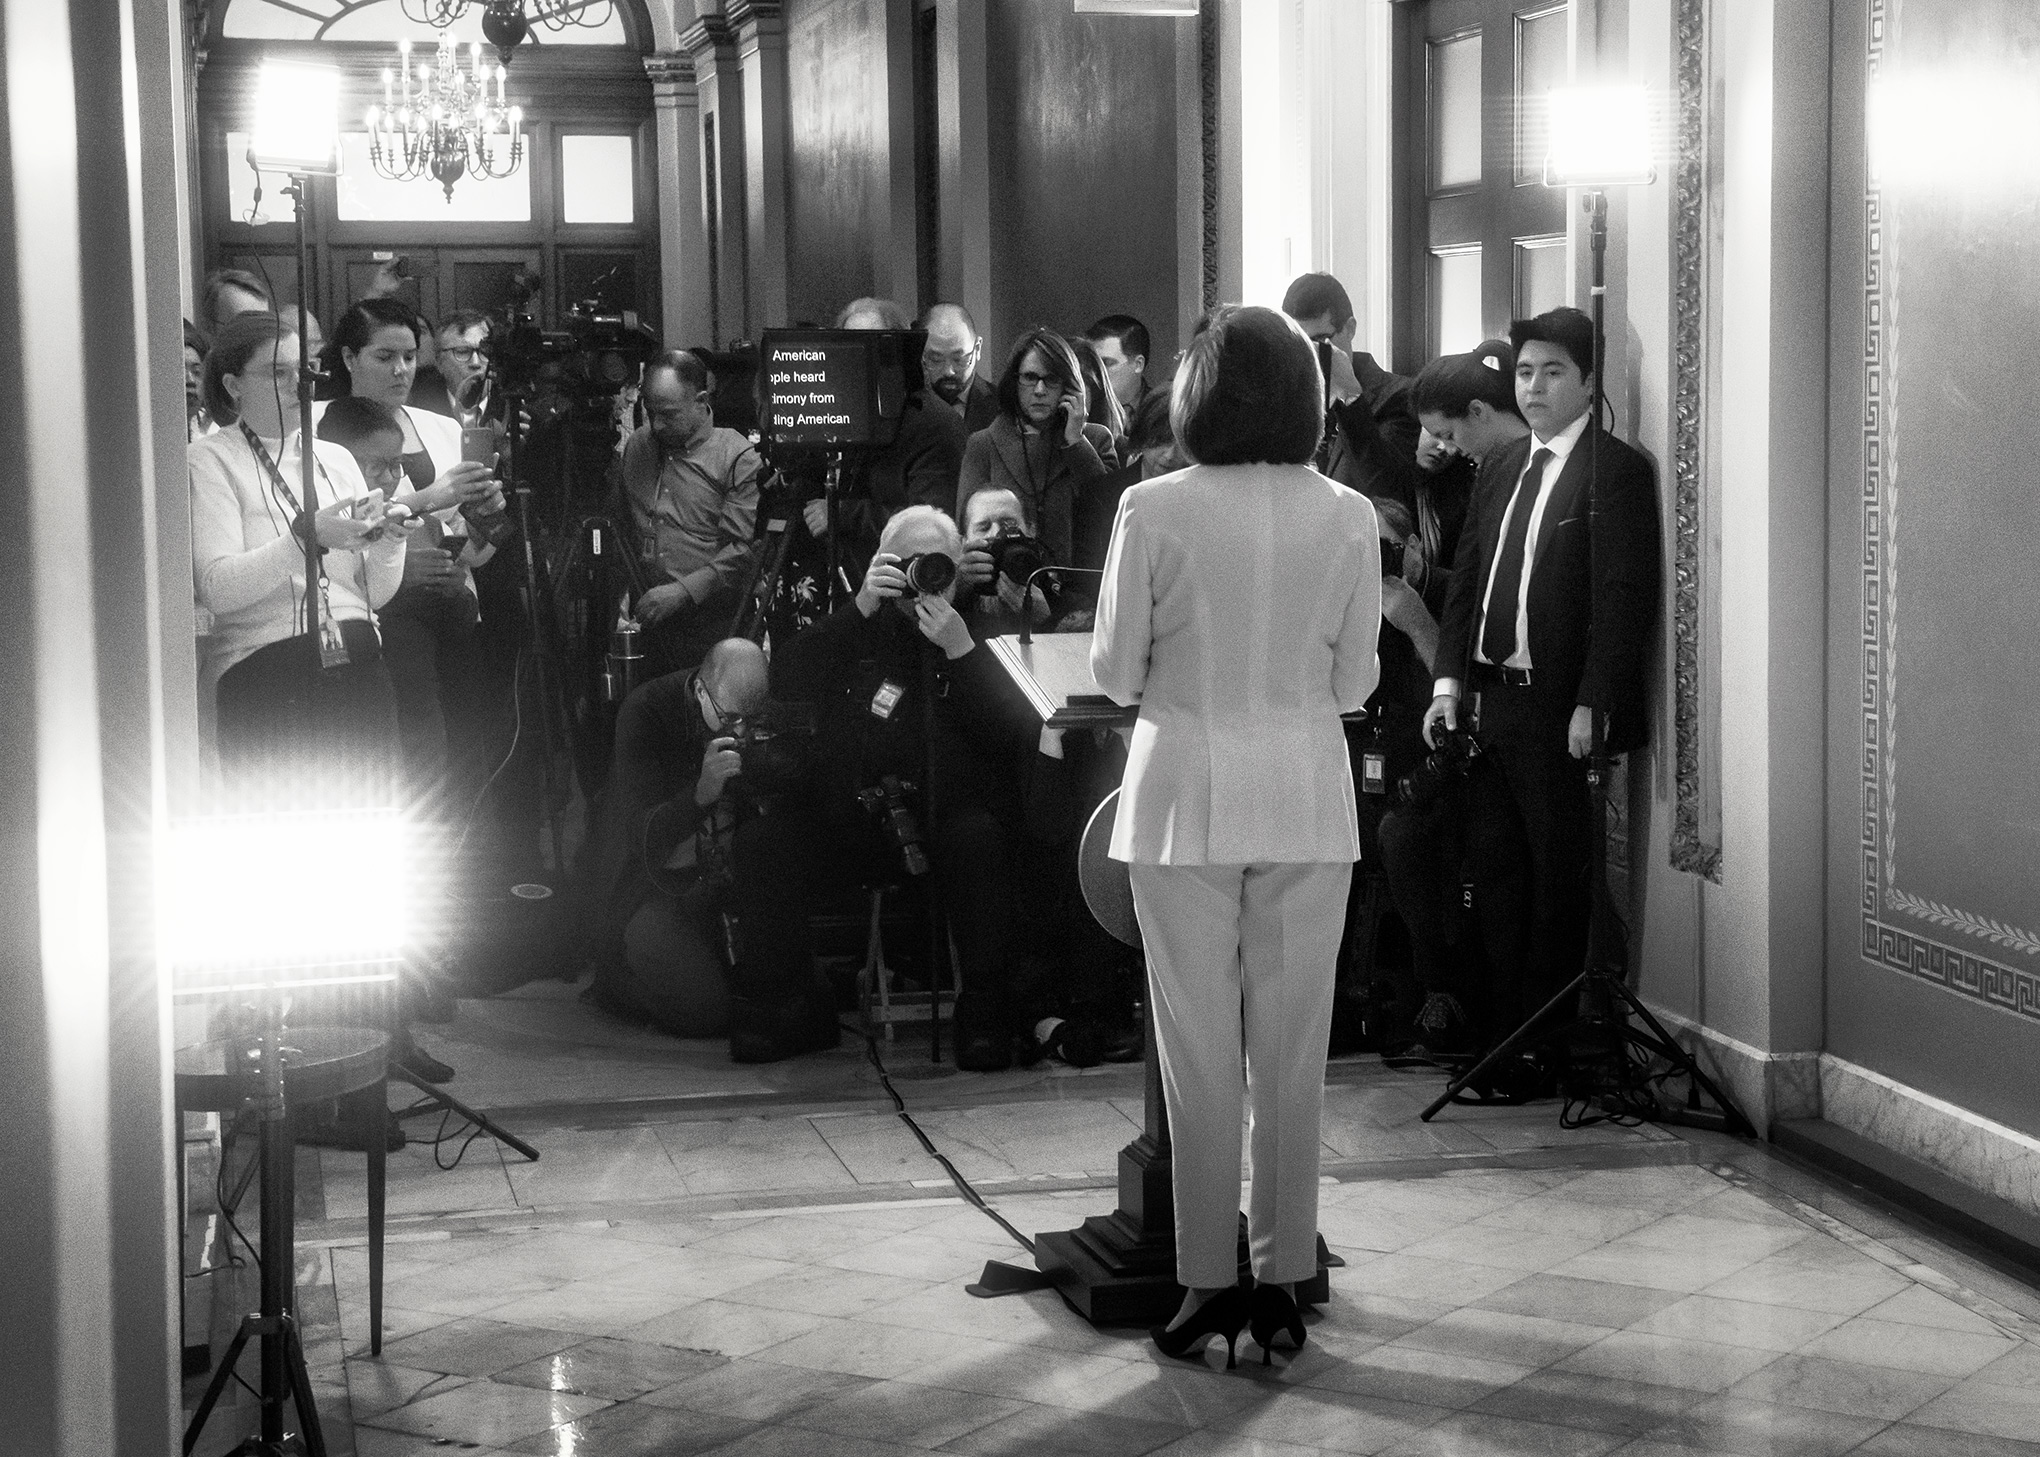 In a televised address given at the Capitol on the morning of December 5, Pelosi announces that the House of Representatives will begin drafting articles of impeachment.